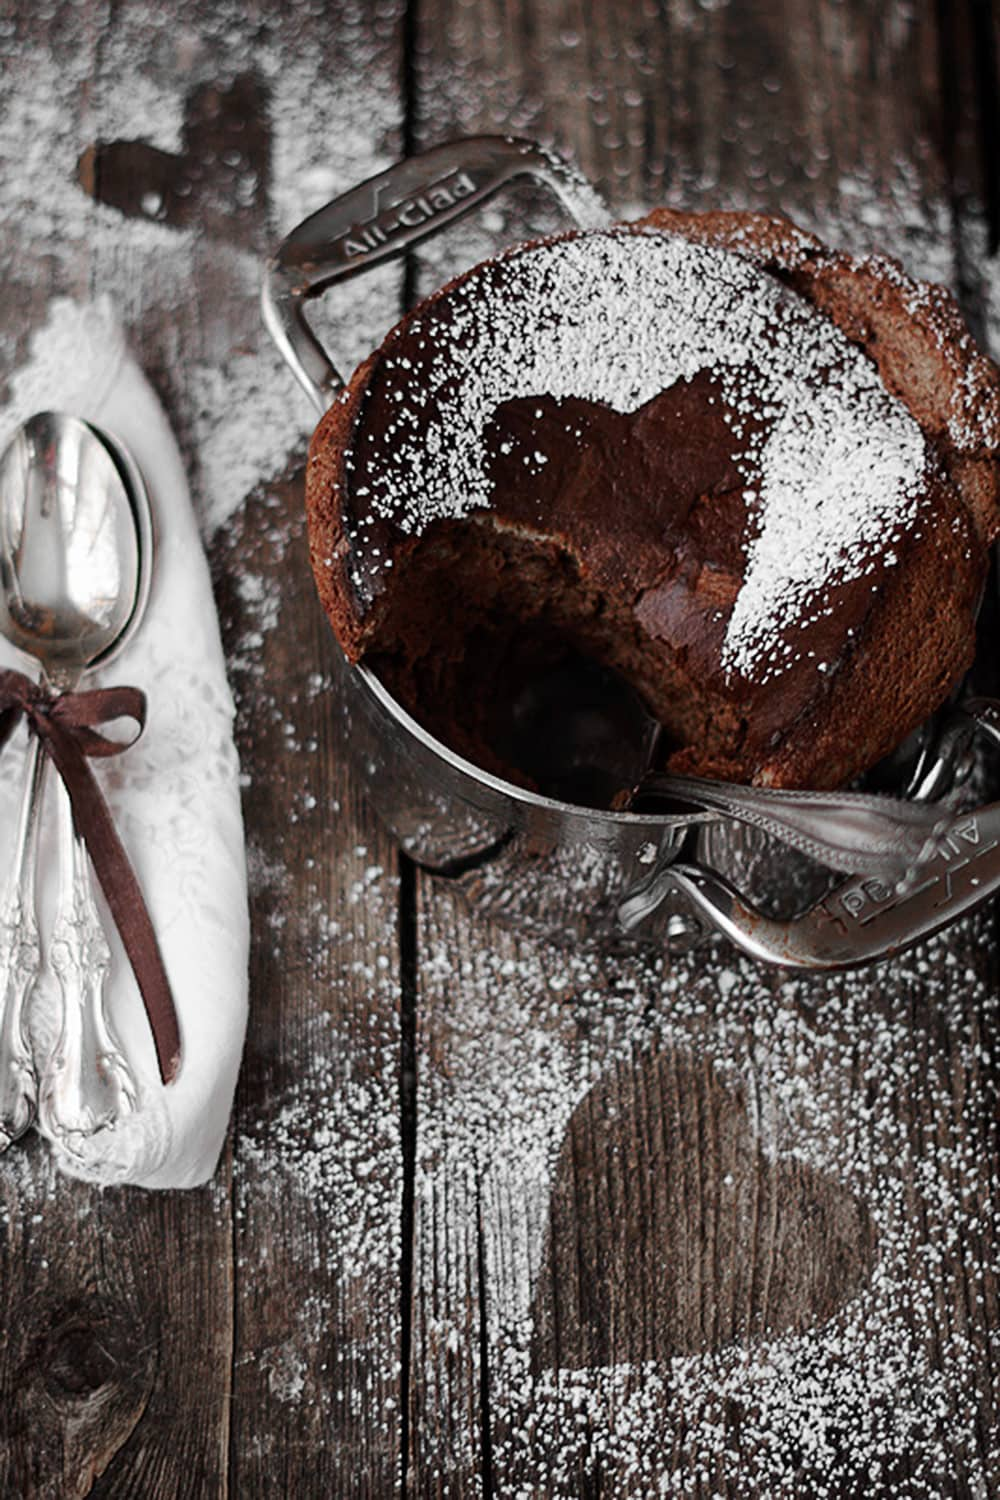 chocolate souffle with some spooned out